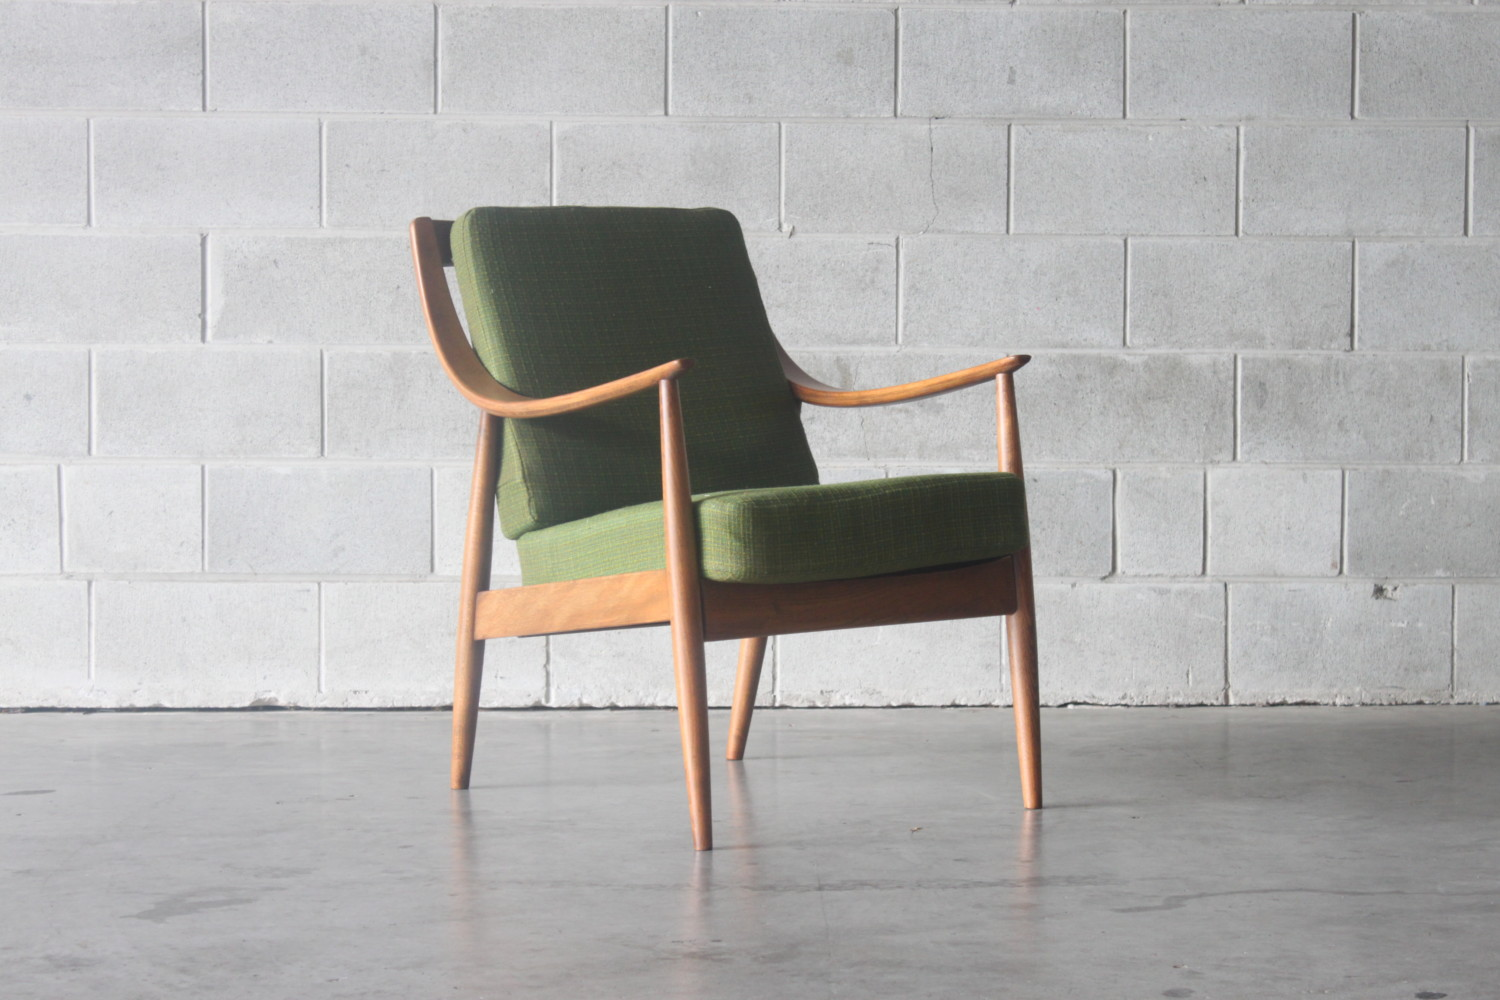 Armchair by Peter Hvidt